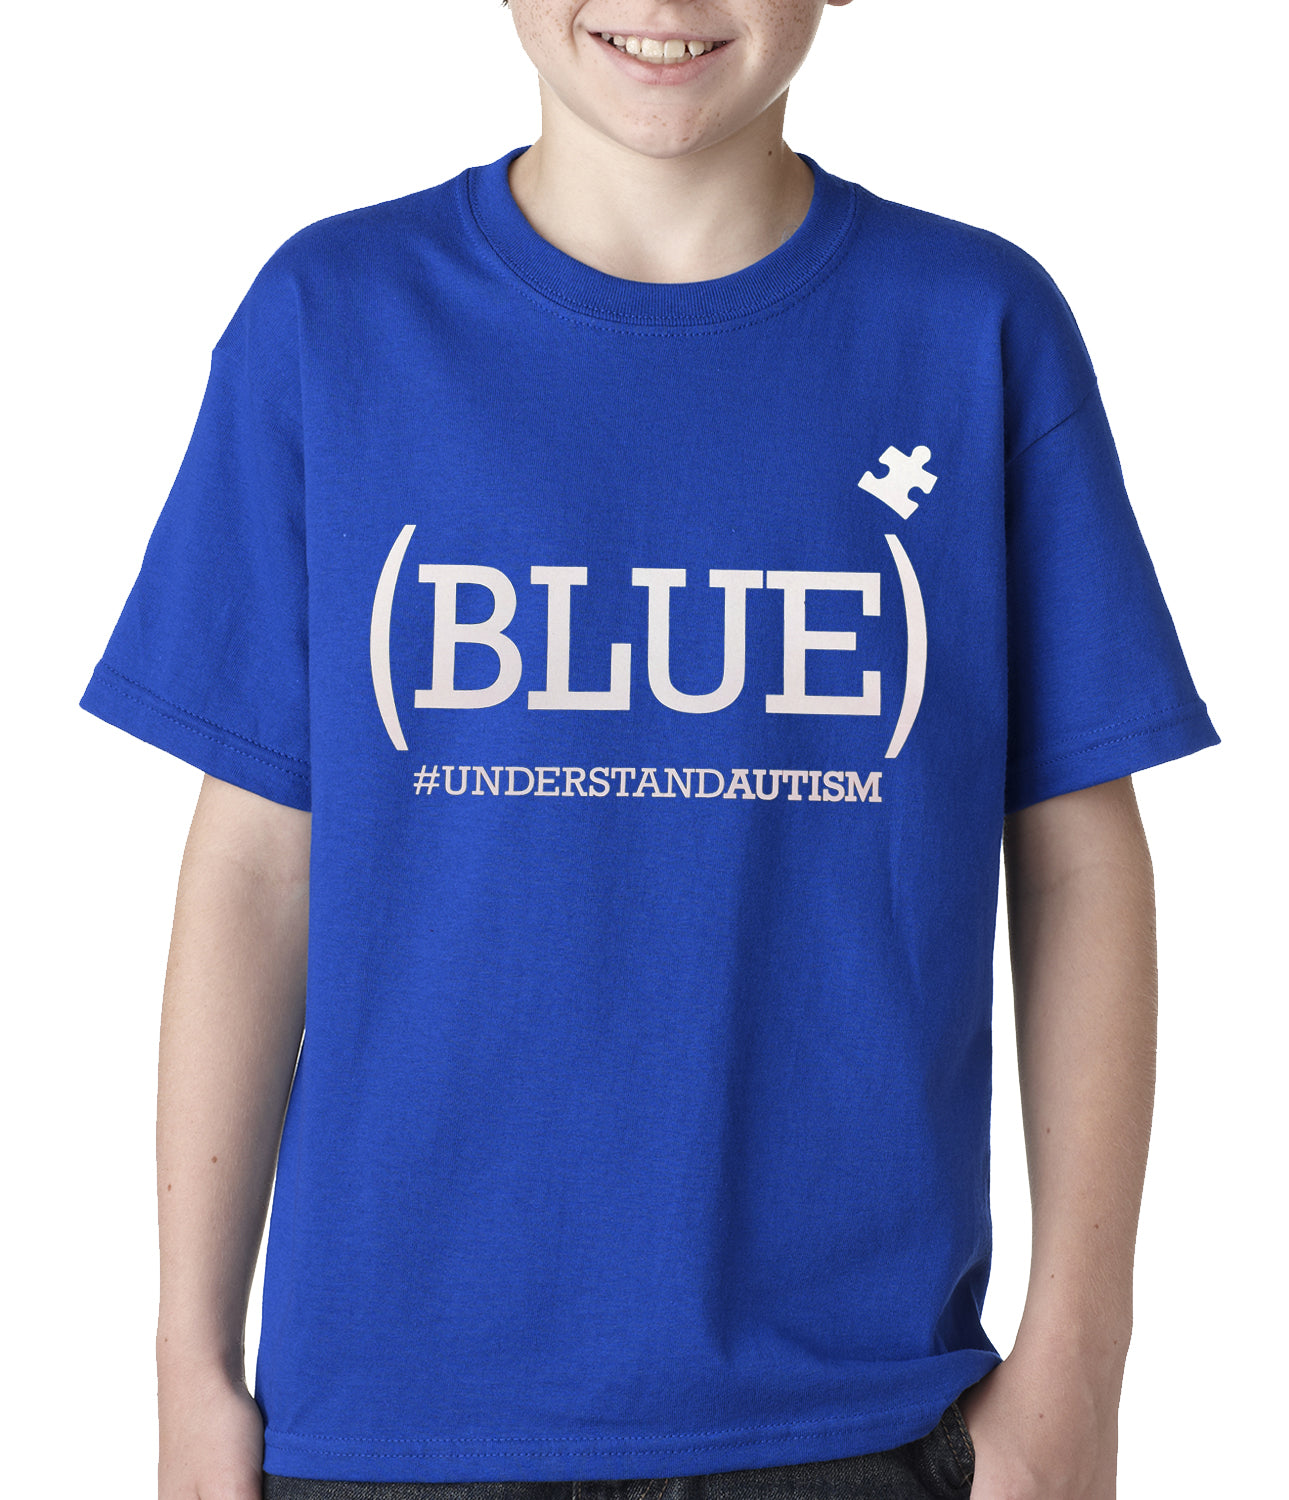 (BLUE) #UNDERSTAND AUTISM Kids T-shirt Royal Blue